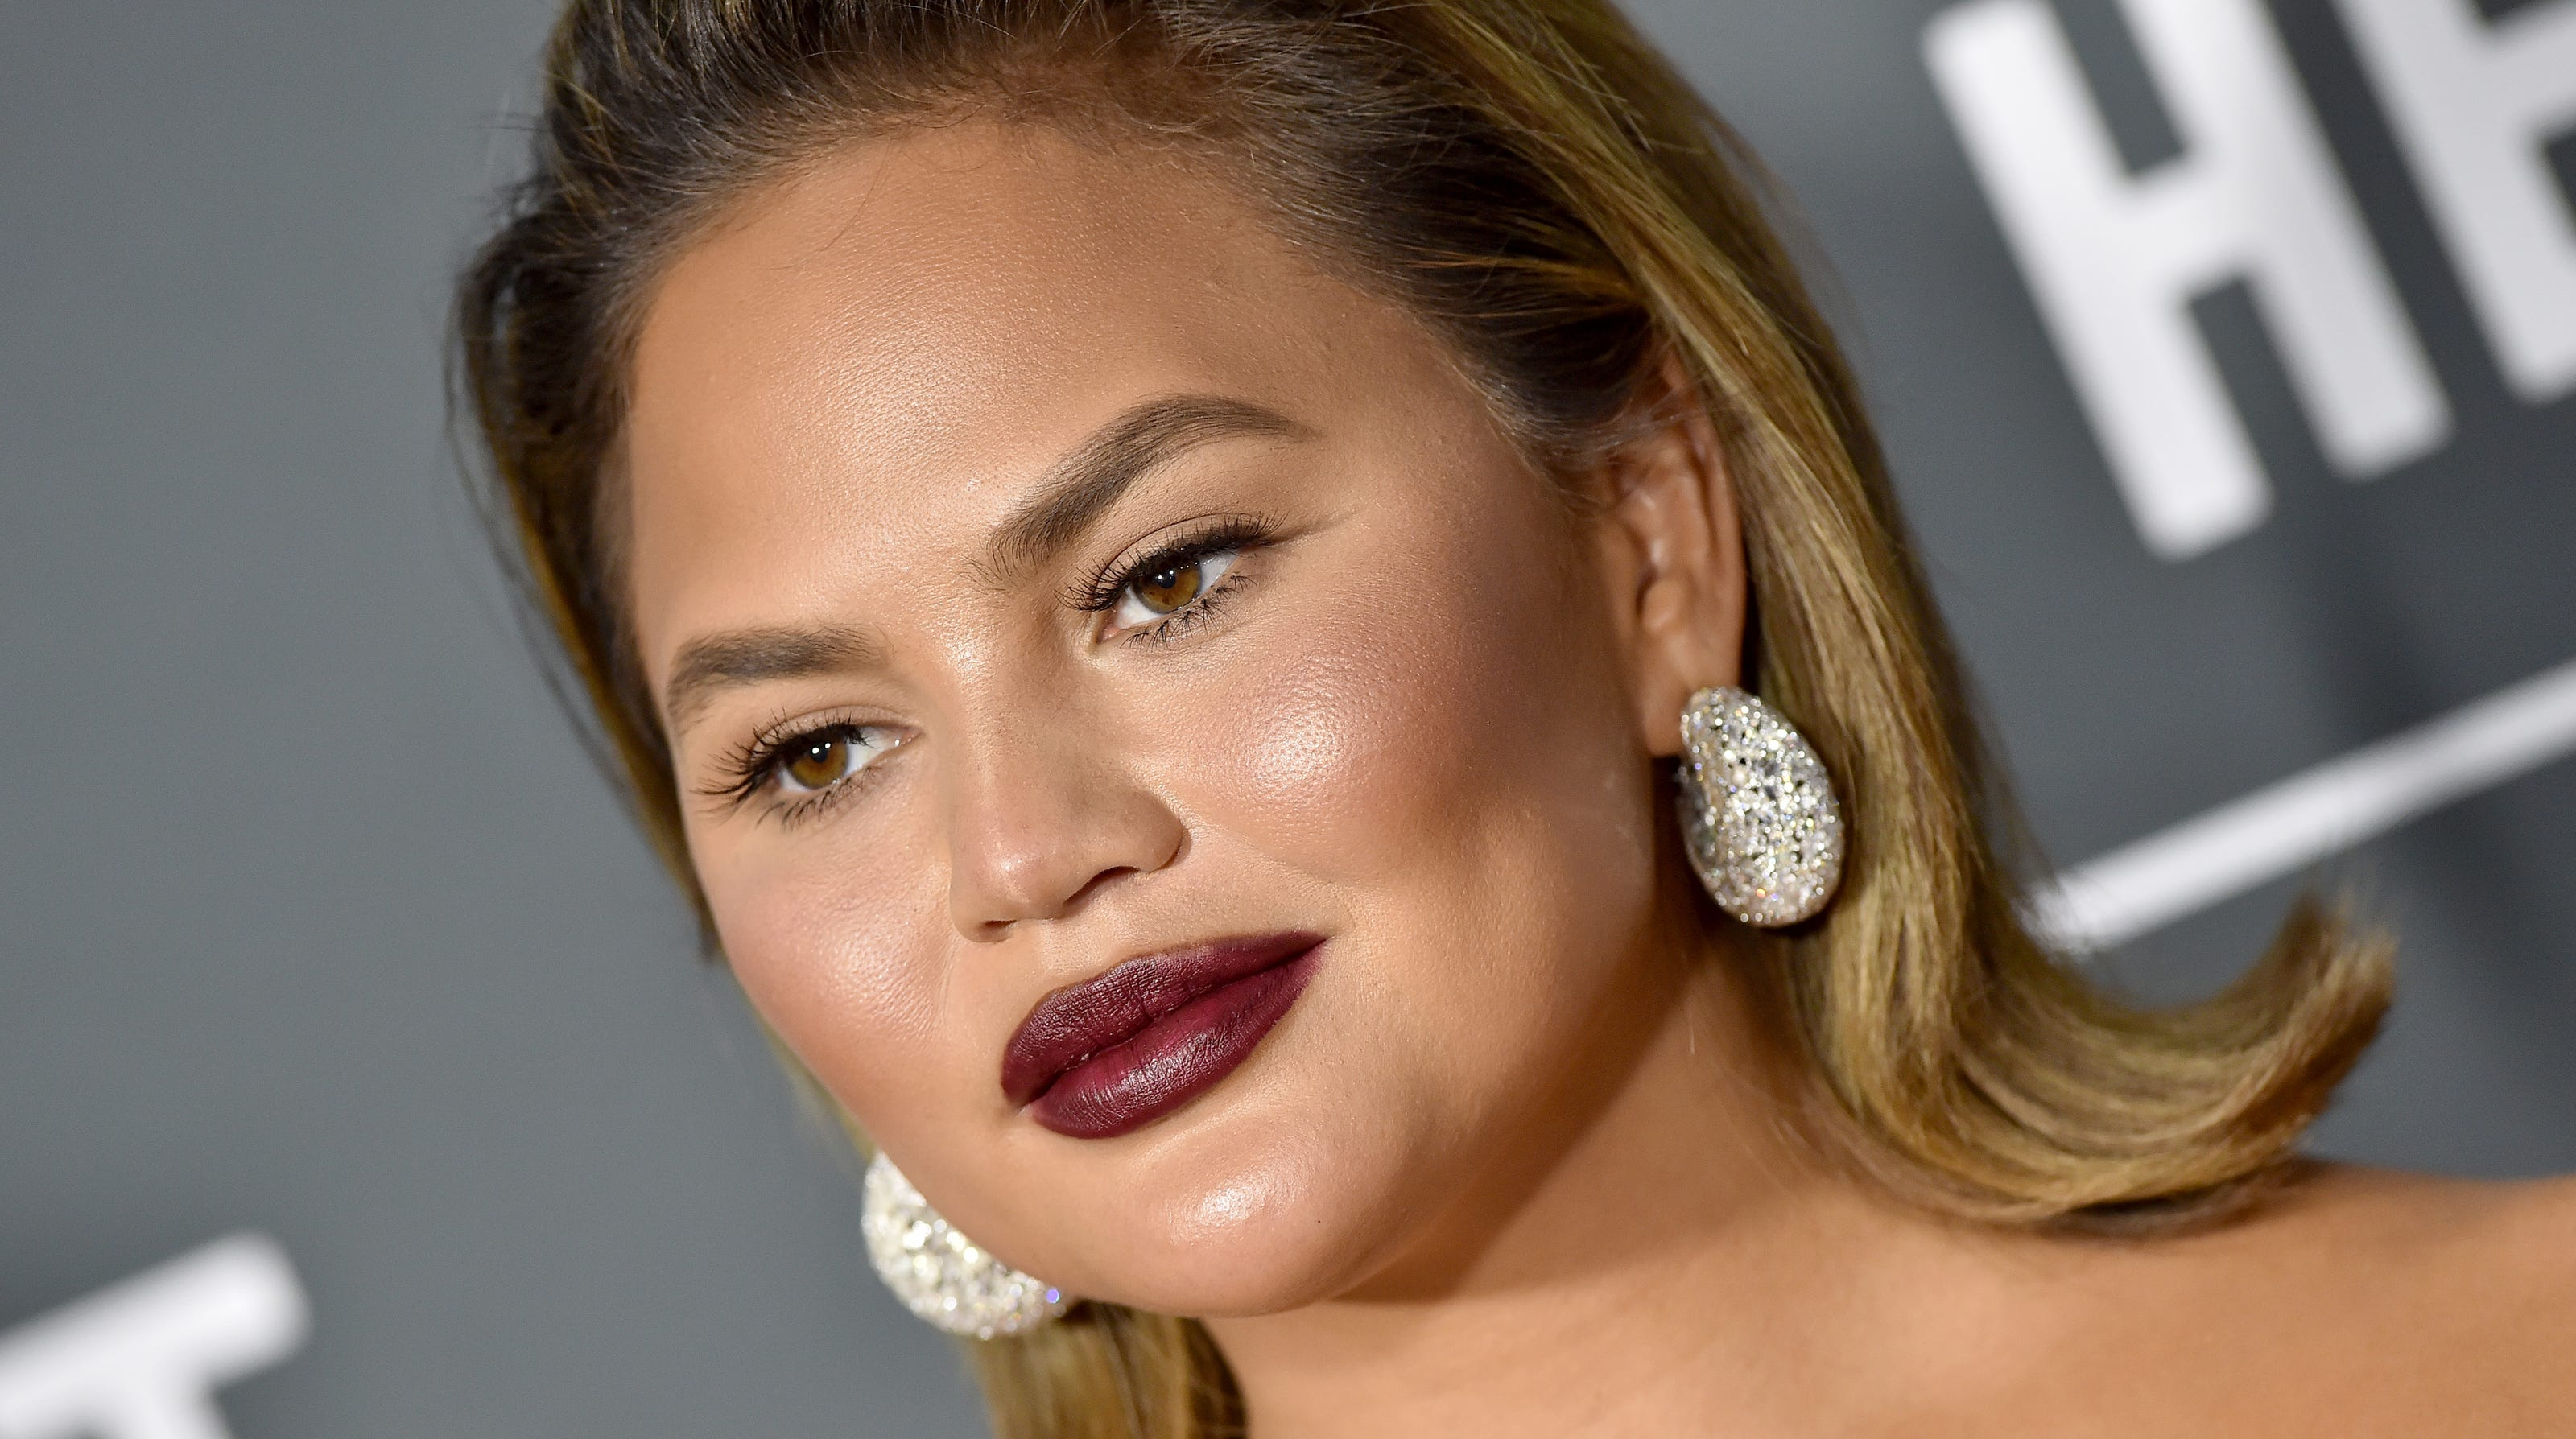 Chrissy Teigen Freaks Out After Twitter Reply From Princess Beatrice